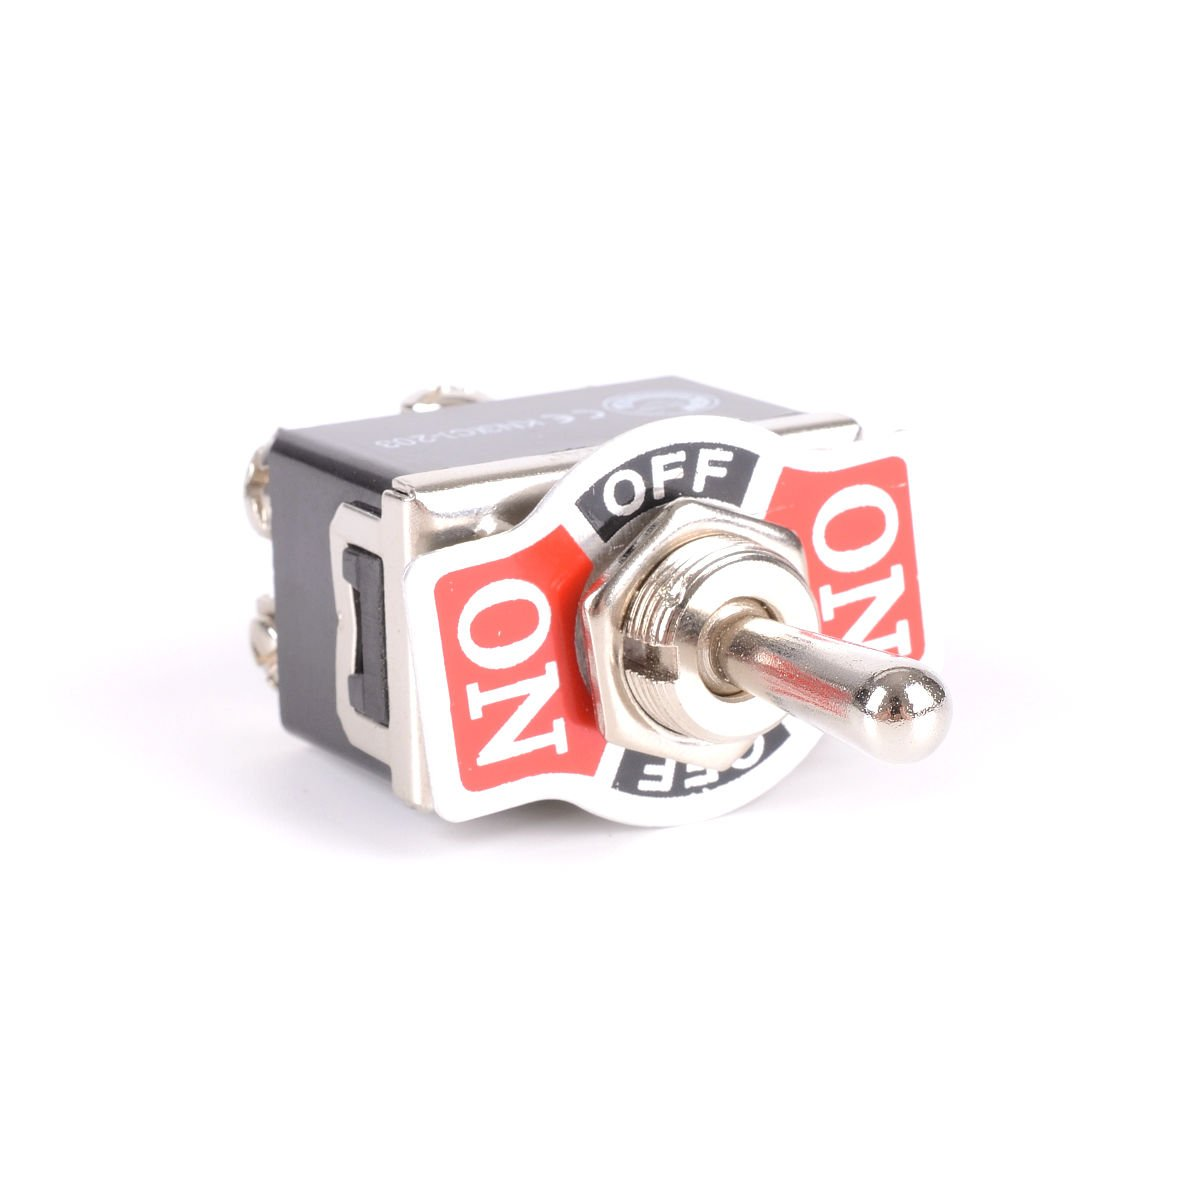 WINOMO 6 Pin Heavy Duty Toggle Switch Flick ON//OFF//ON Dashboard DPDT Switch with Red Protective Cover for Car Trailer Boat Marine